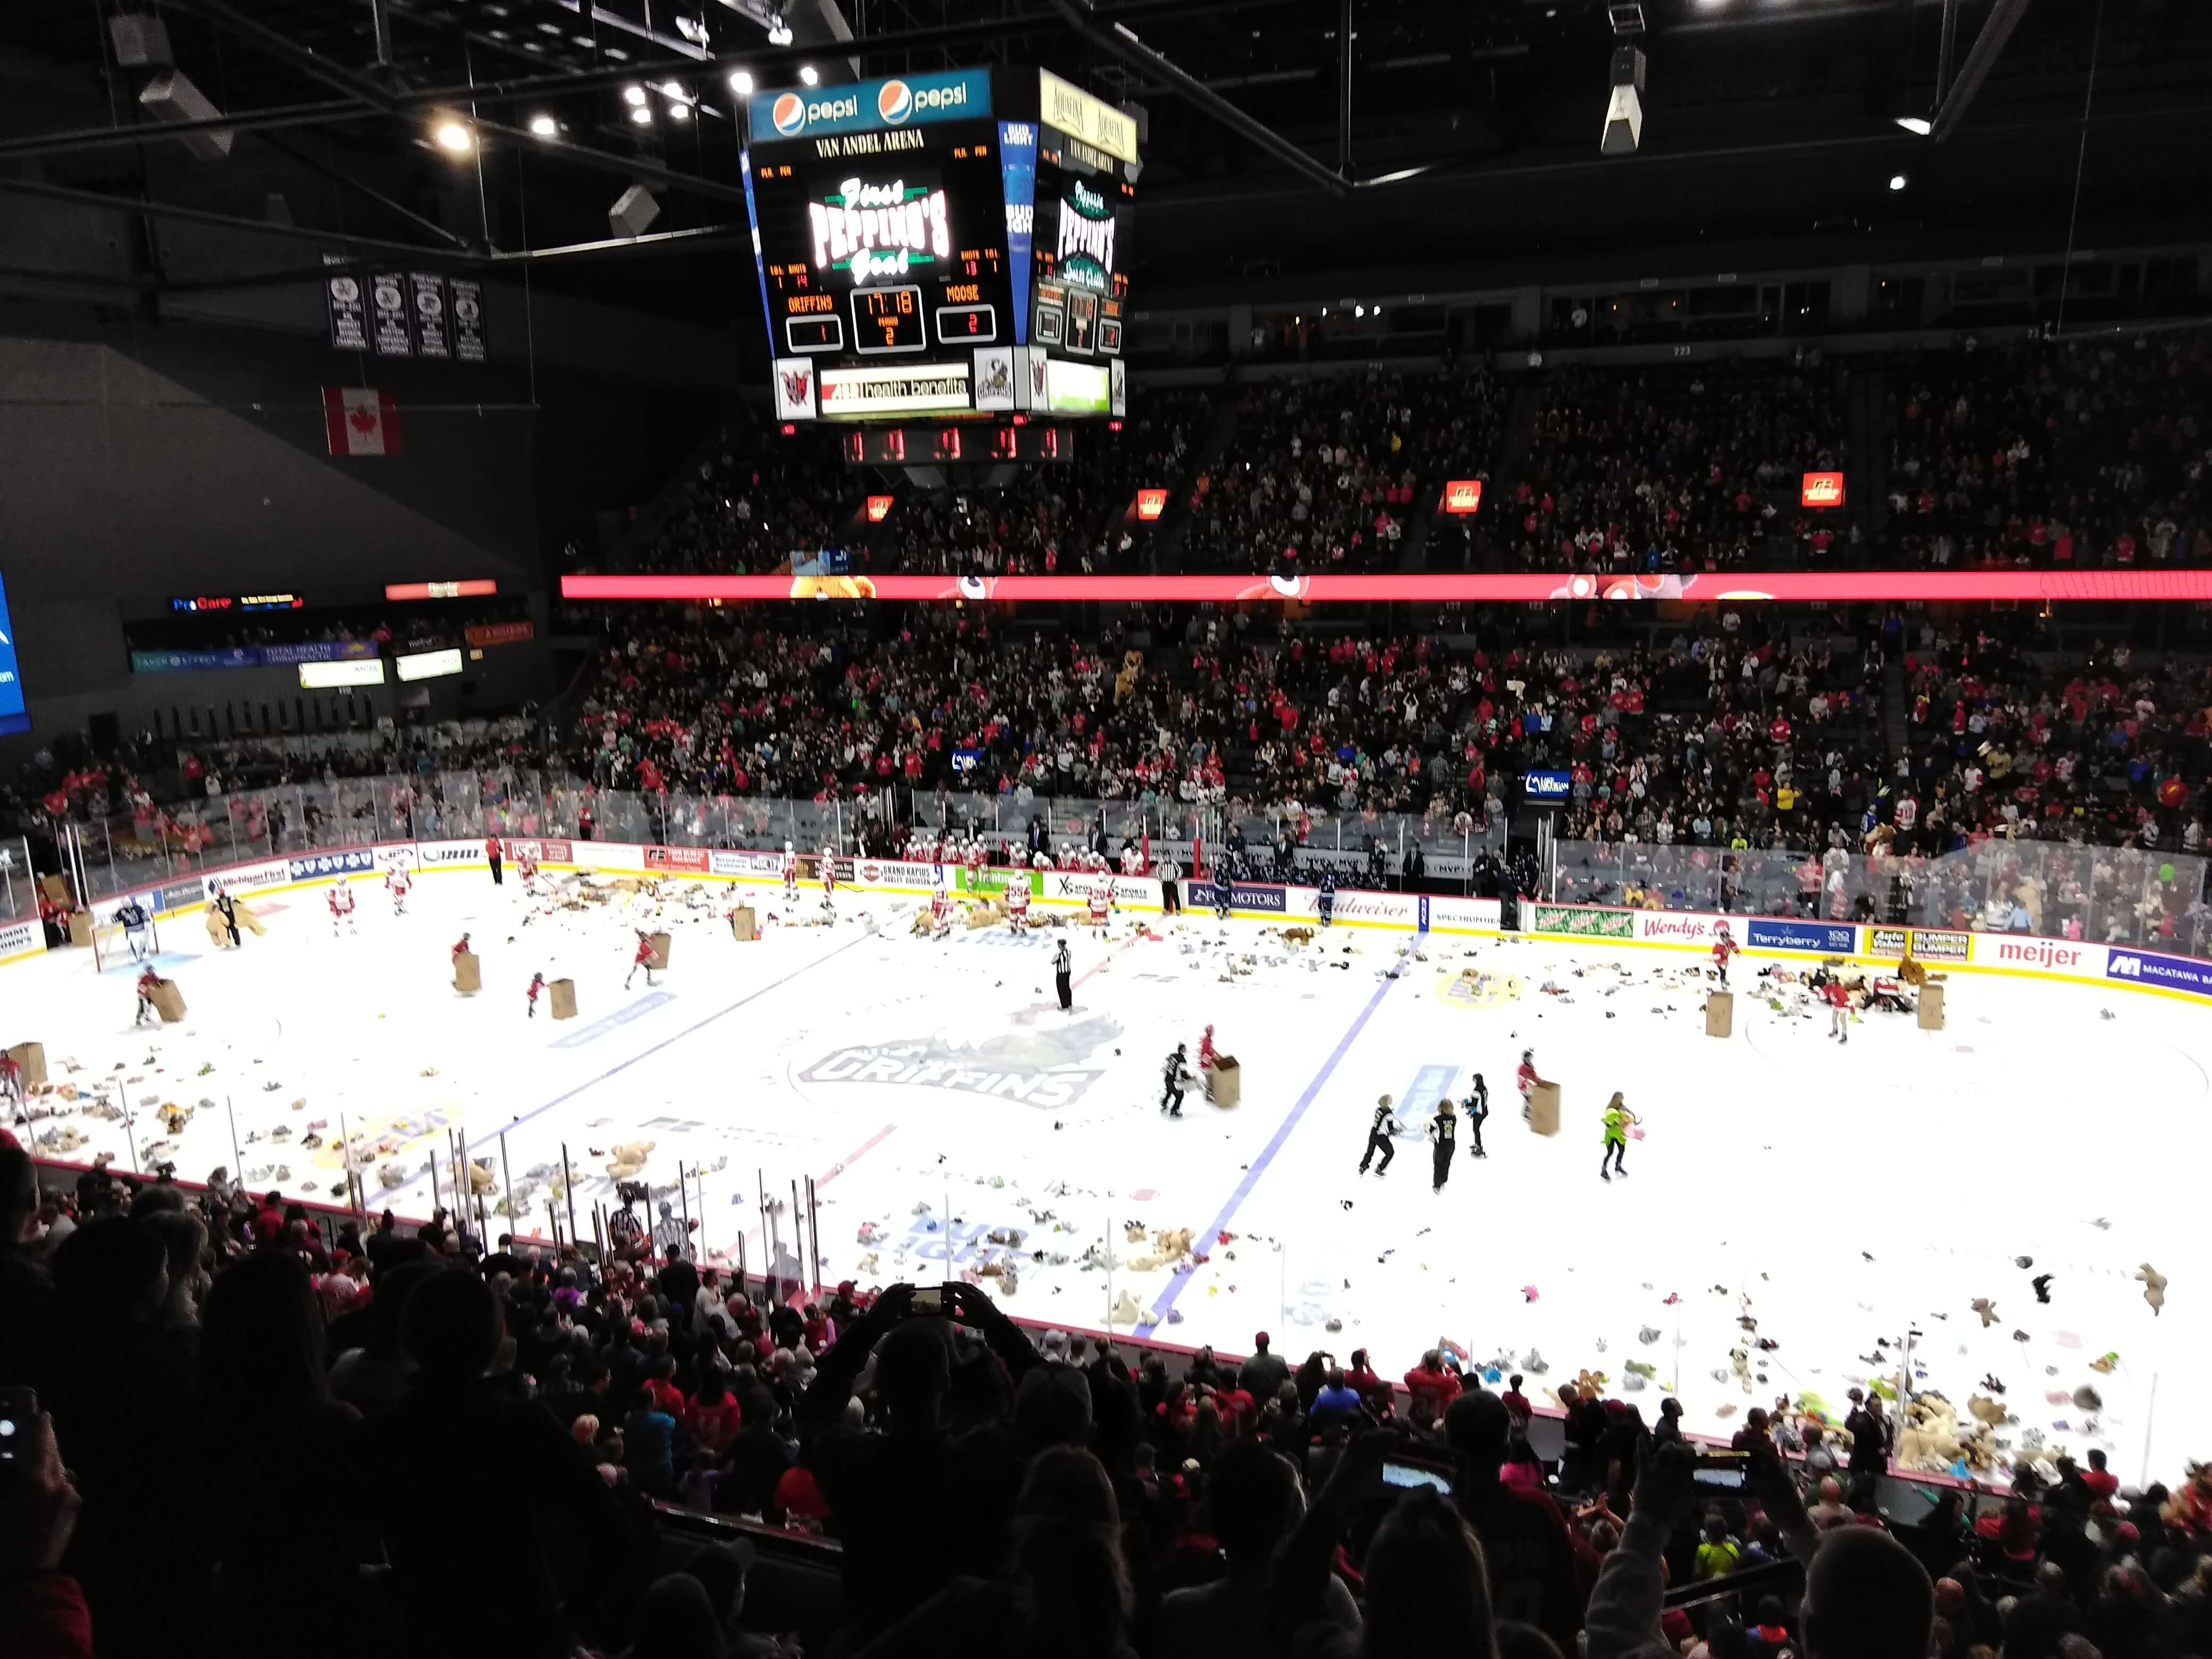 Tossing Teddy Bears Into a Wishing Well | Griffins vs Moose